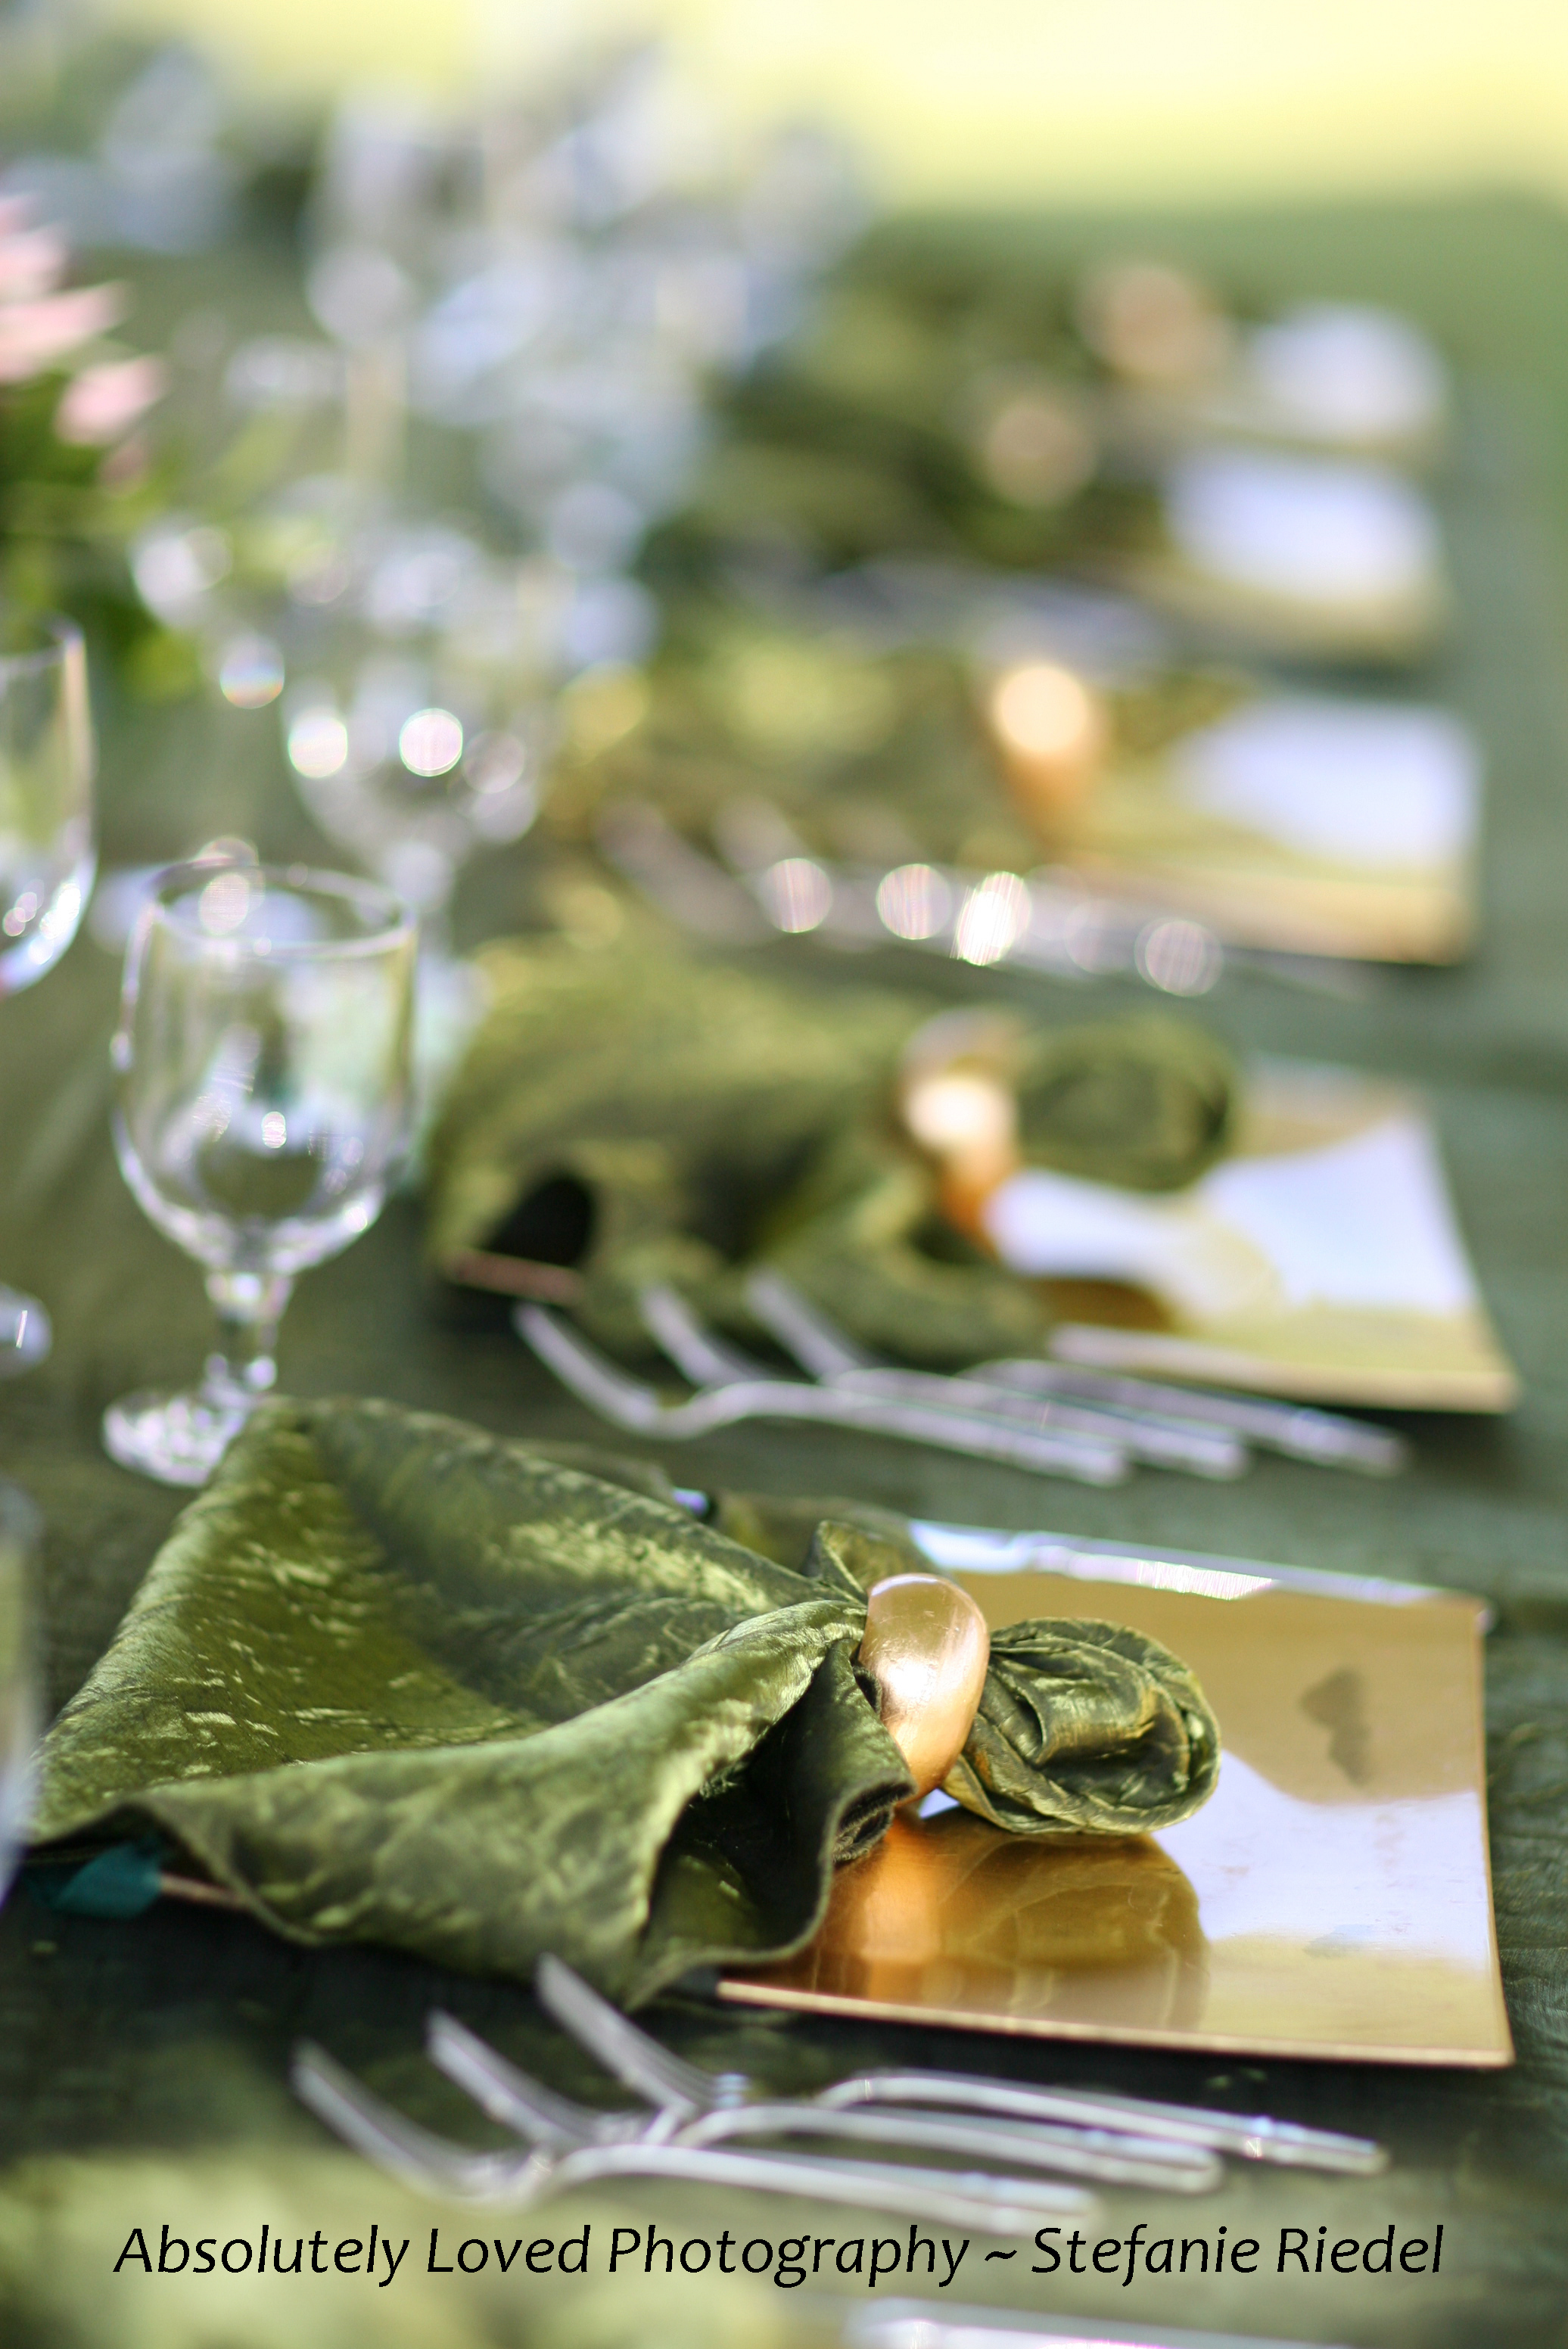 Reception, Flowers & Decor, Photography, green, gold, And, Anna, 808, Stefanie, Riedel, Wwwabsolutelylovedcom, Loved, Absolutely, 779, 1895